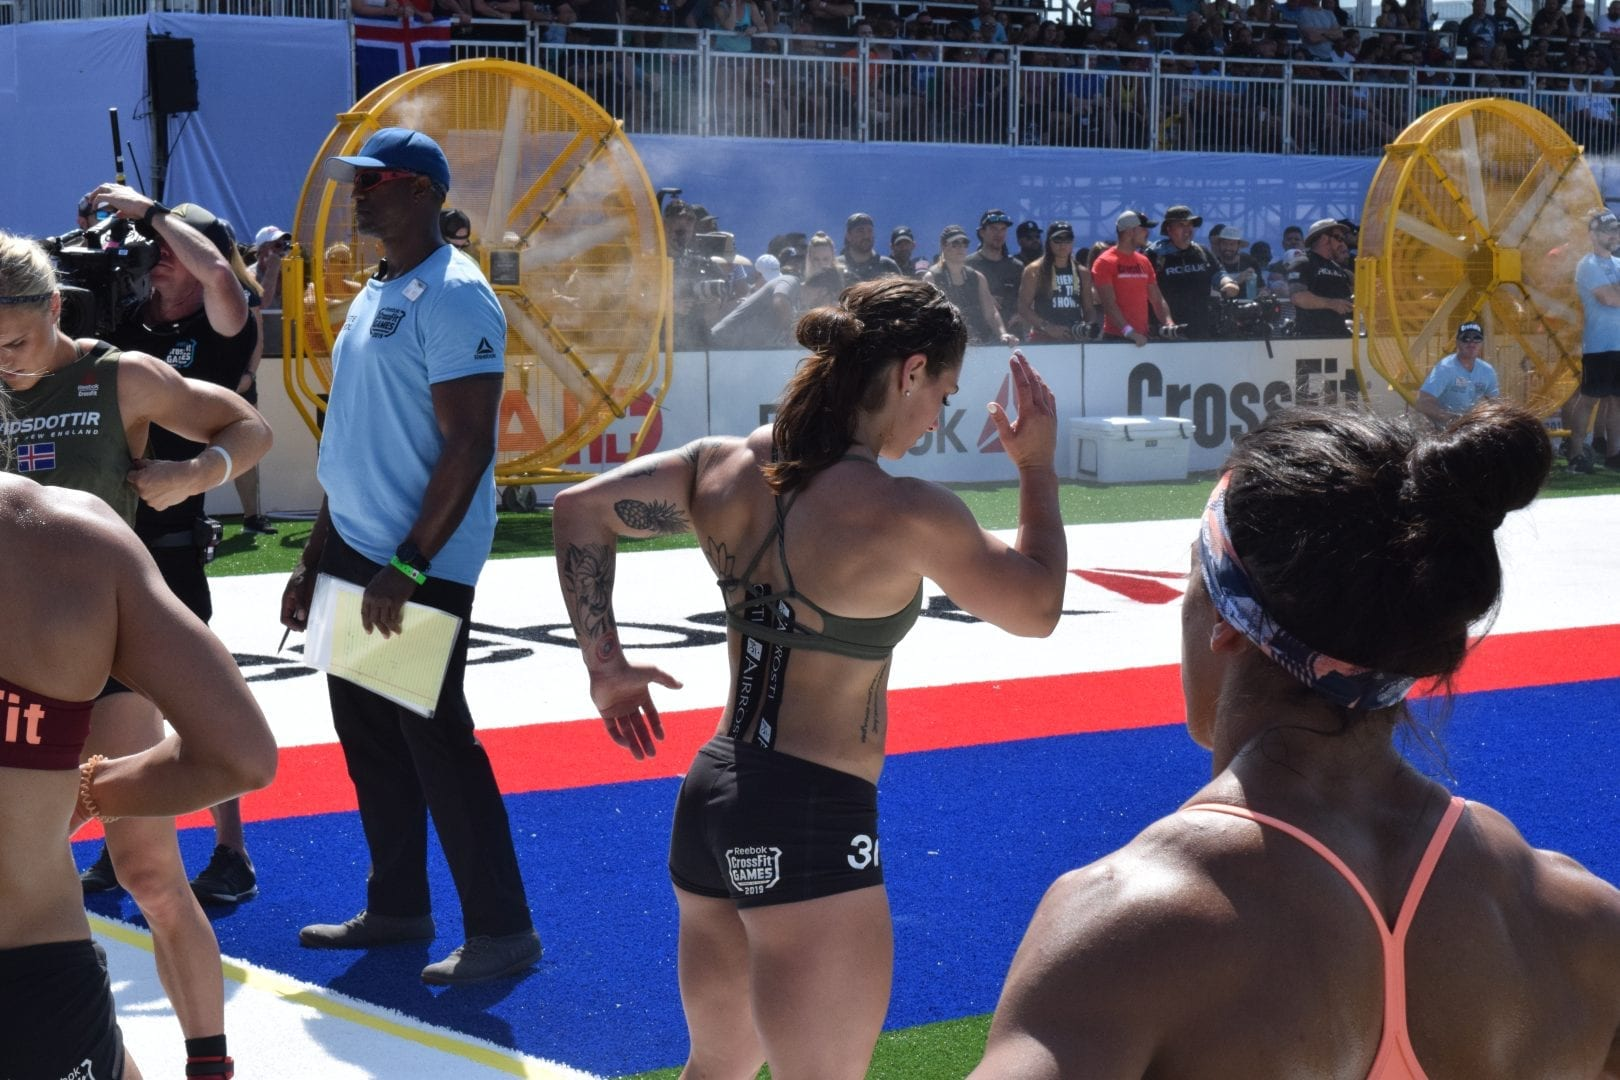 Bethany Shadburne of Streamline CrossFit warms up for a heat of the Sprint event at the 2019 CrossFit Games